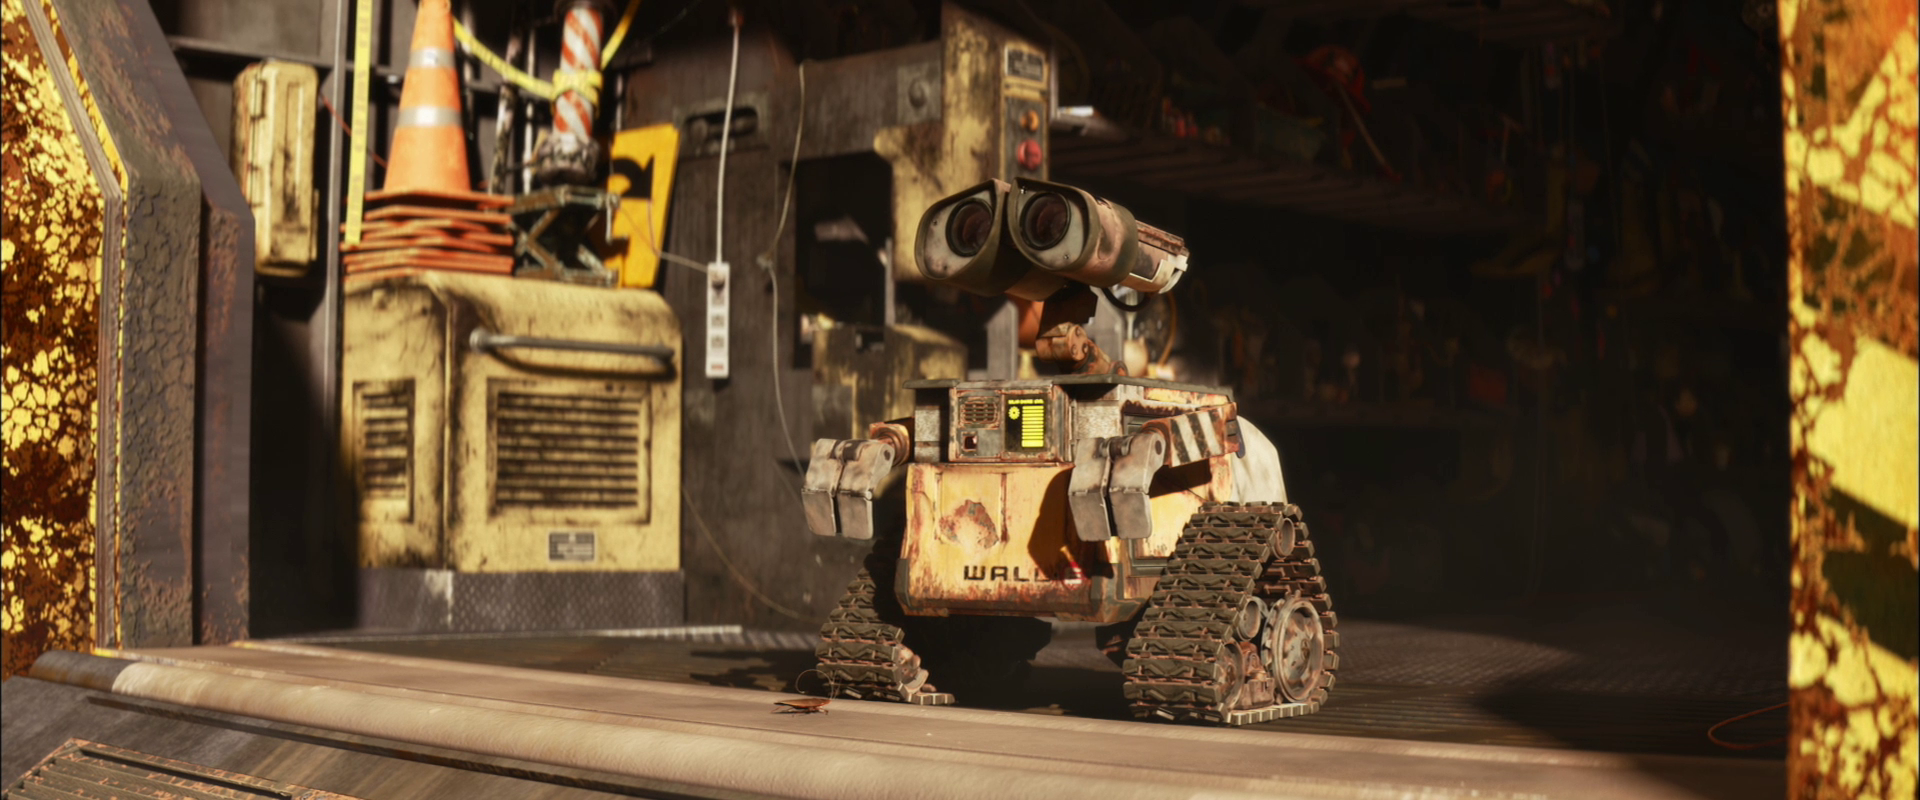 [wall-e_fonte: https://it.wikipedia.org/wiki/WALL%E2%80%A2E]